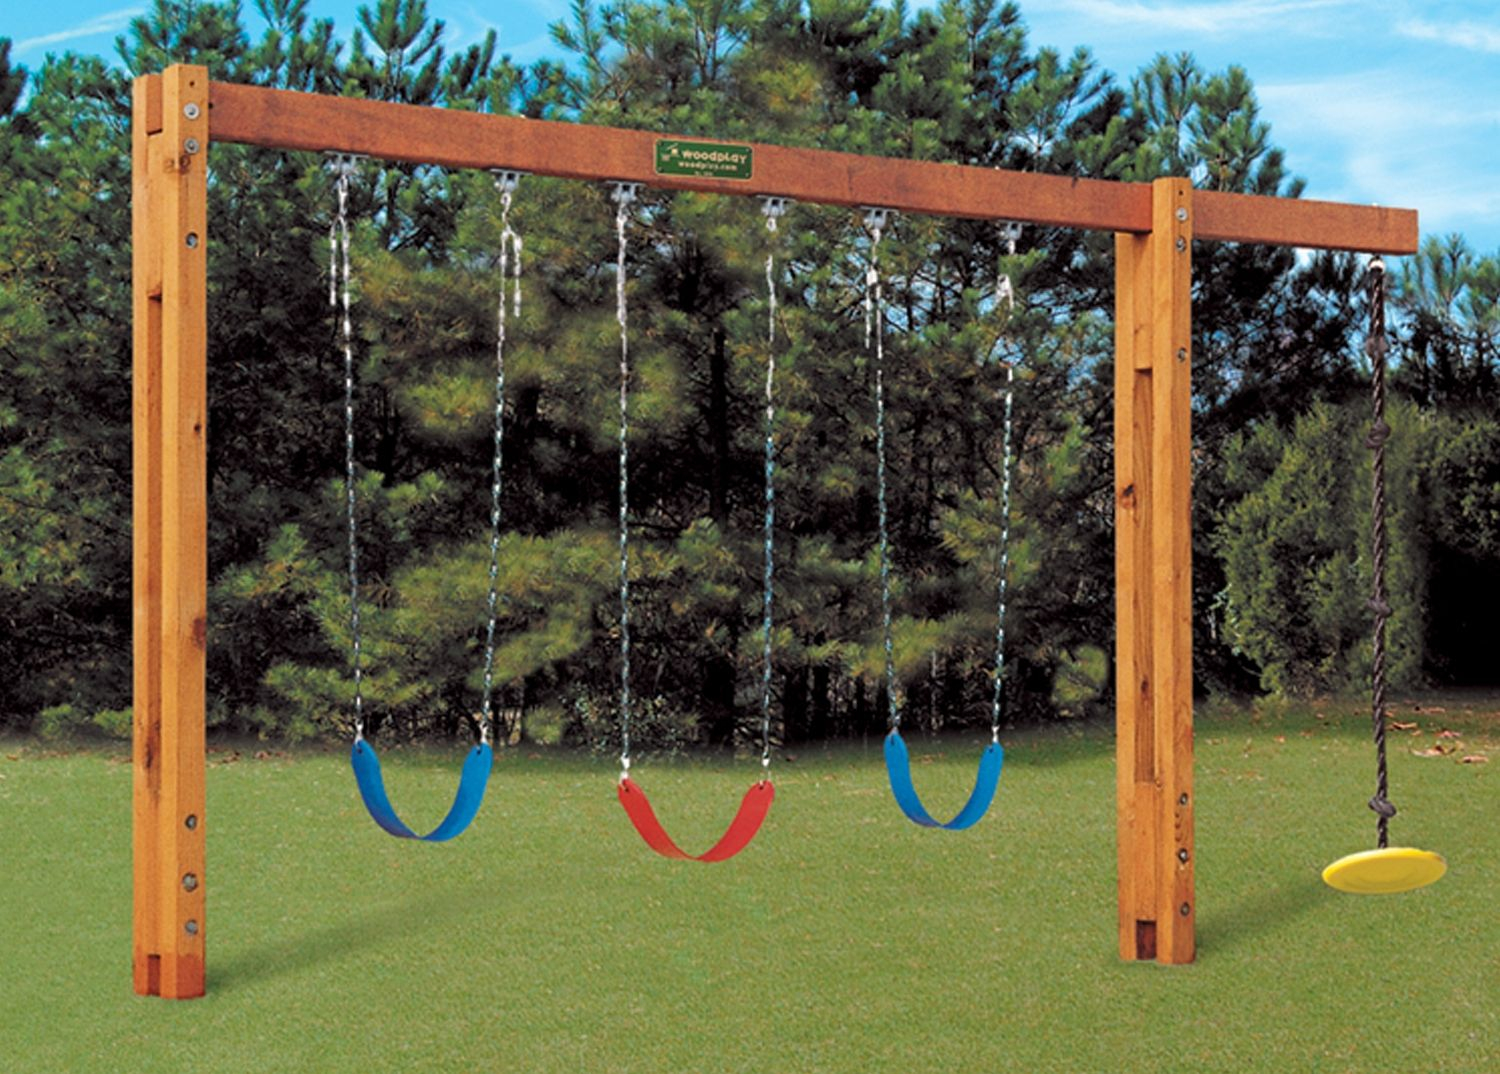 Freestanding Swingset Fun Things For Kids Backyard Swings intended for 12 Smart Ideas How to Upgrade Backyard Swing Set Ideas